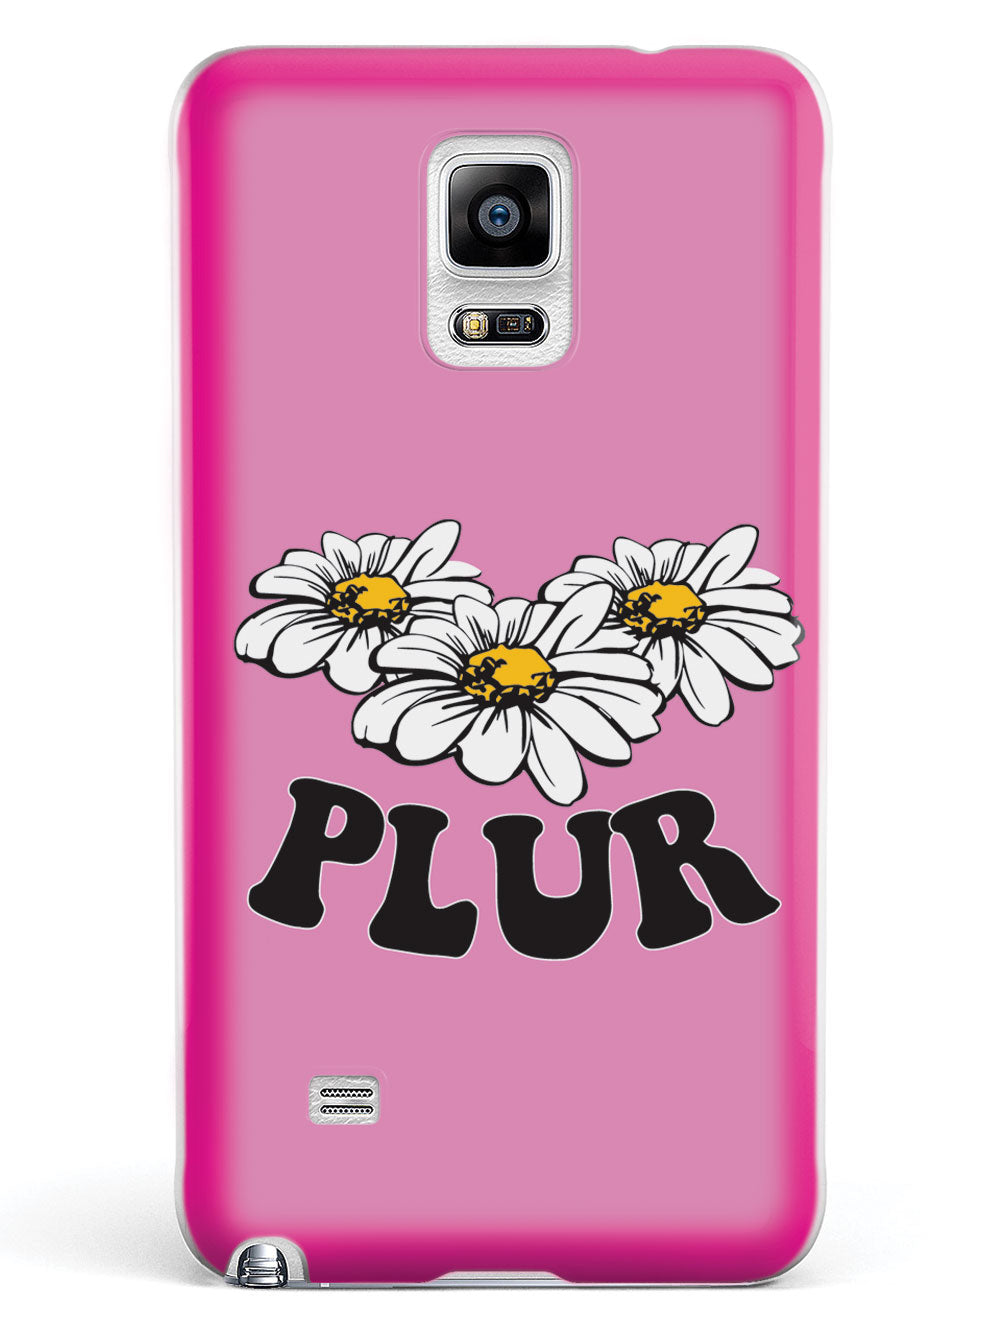 Pink PLUR - White Case